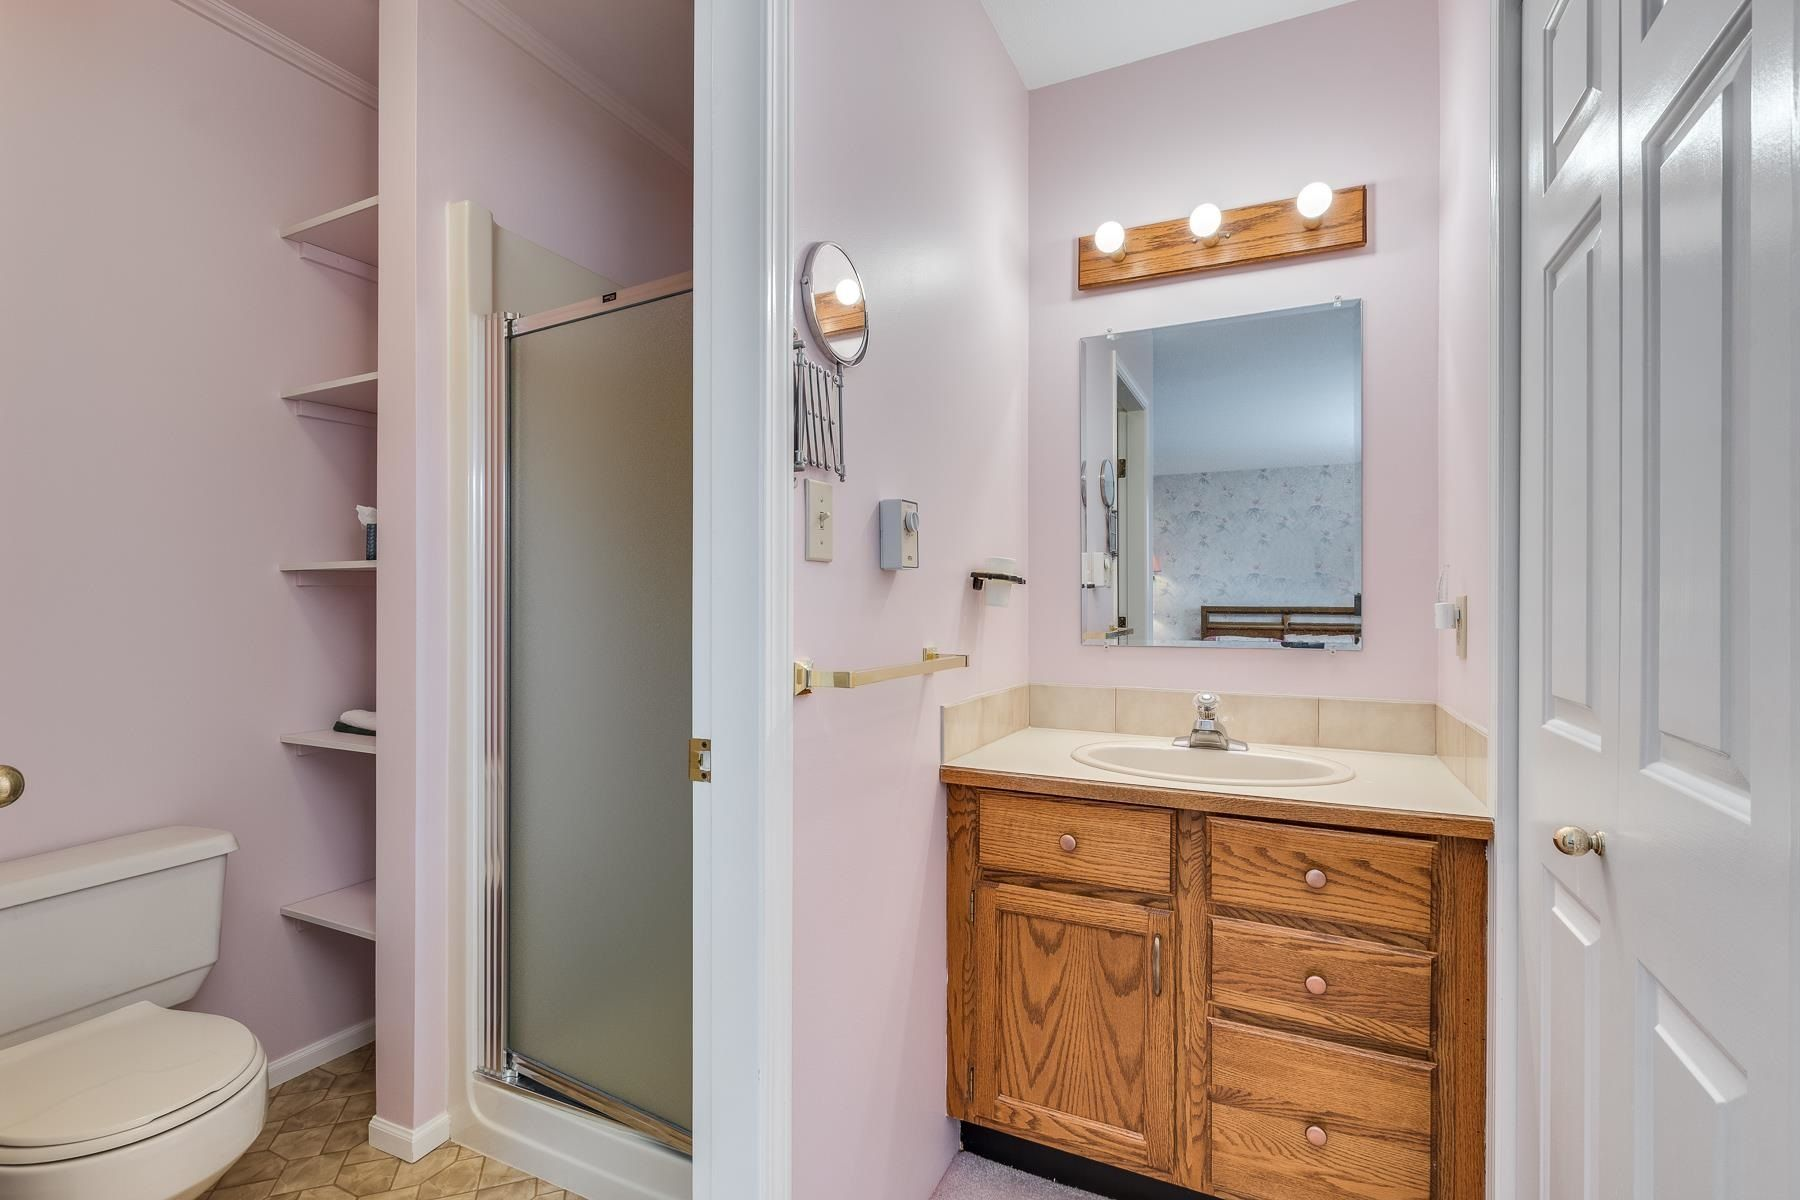 """Photo 23: Photos: 378 BALFOUR Drive in Coquitlam: Coquitlam East House for sale in """"DARTMOOR HEIGHTS"""" : MLS®# R2600428"""